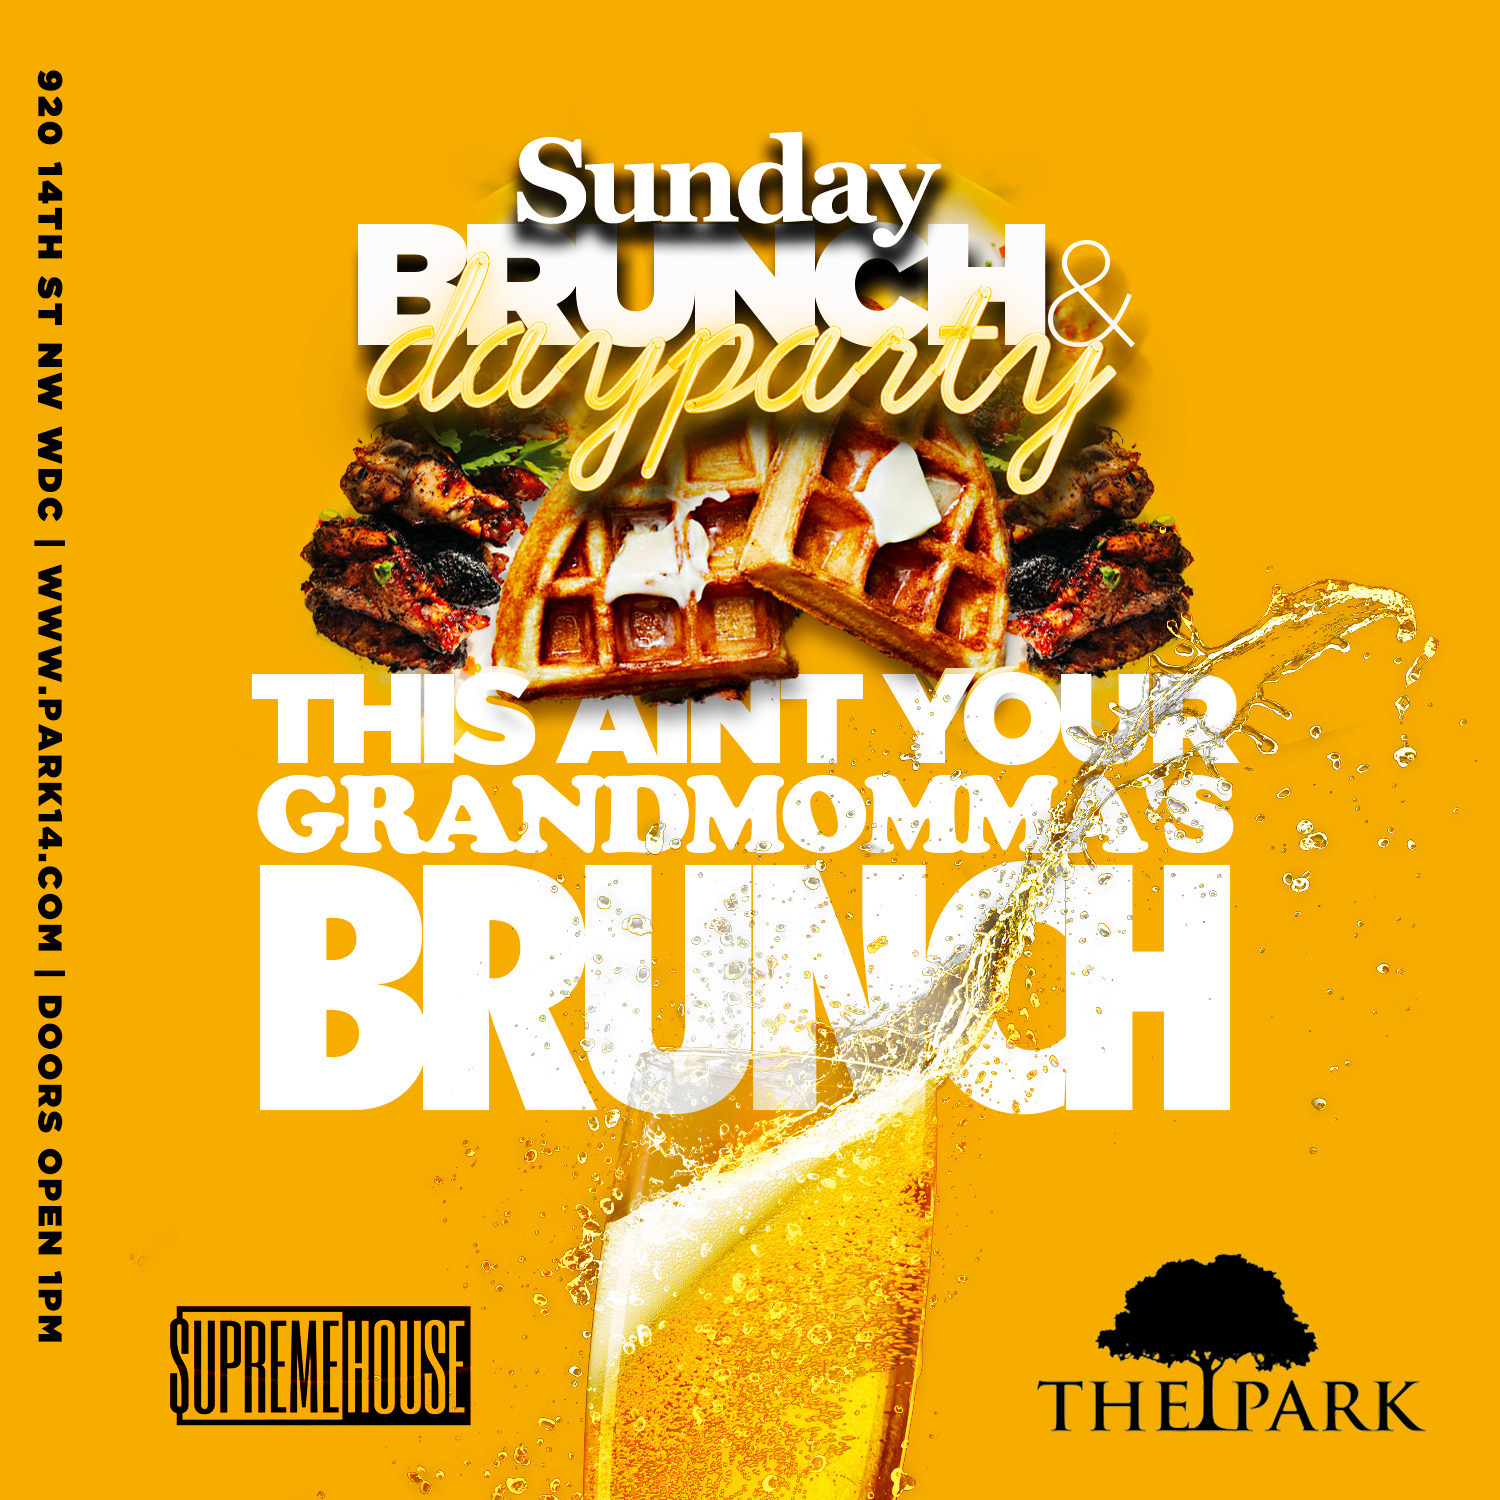 The Park Sunday Brunch + Day Party! Tickets, Sun, Sep 15